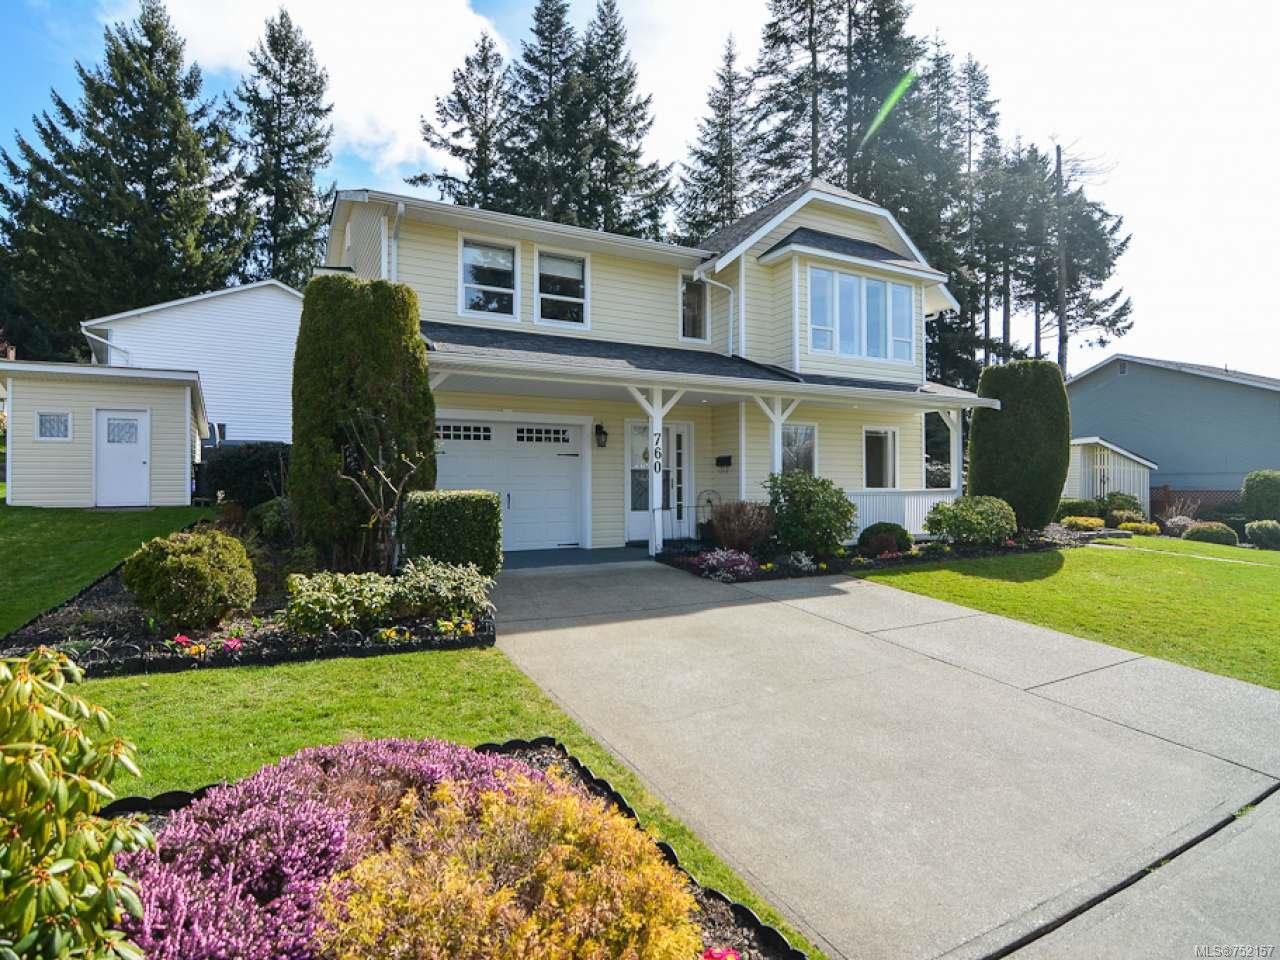 Main Photo: 760 Highwood Dr in COMOX: CV Comox (Town of) House for sale (Comox Valley)  : MLS®# 752157